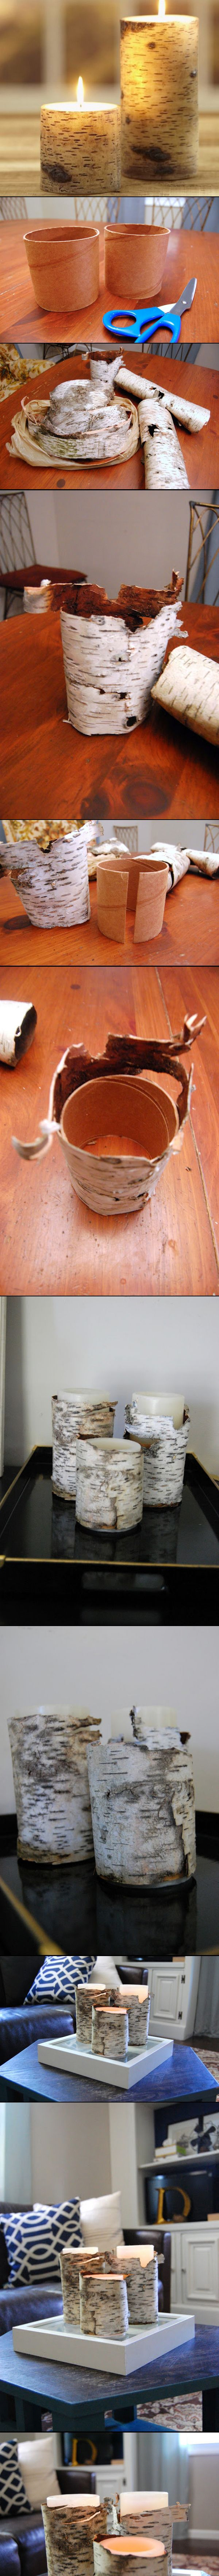 DIY Birch Bark Candles-Now to find birch bark :)